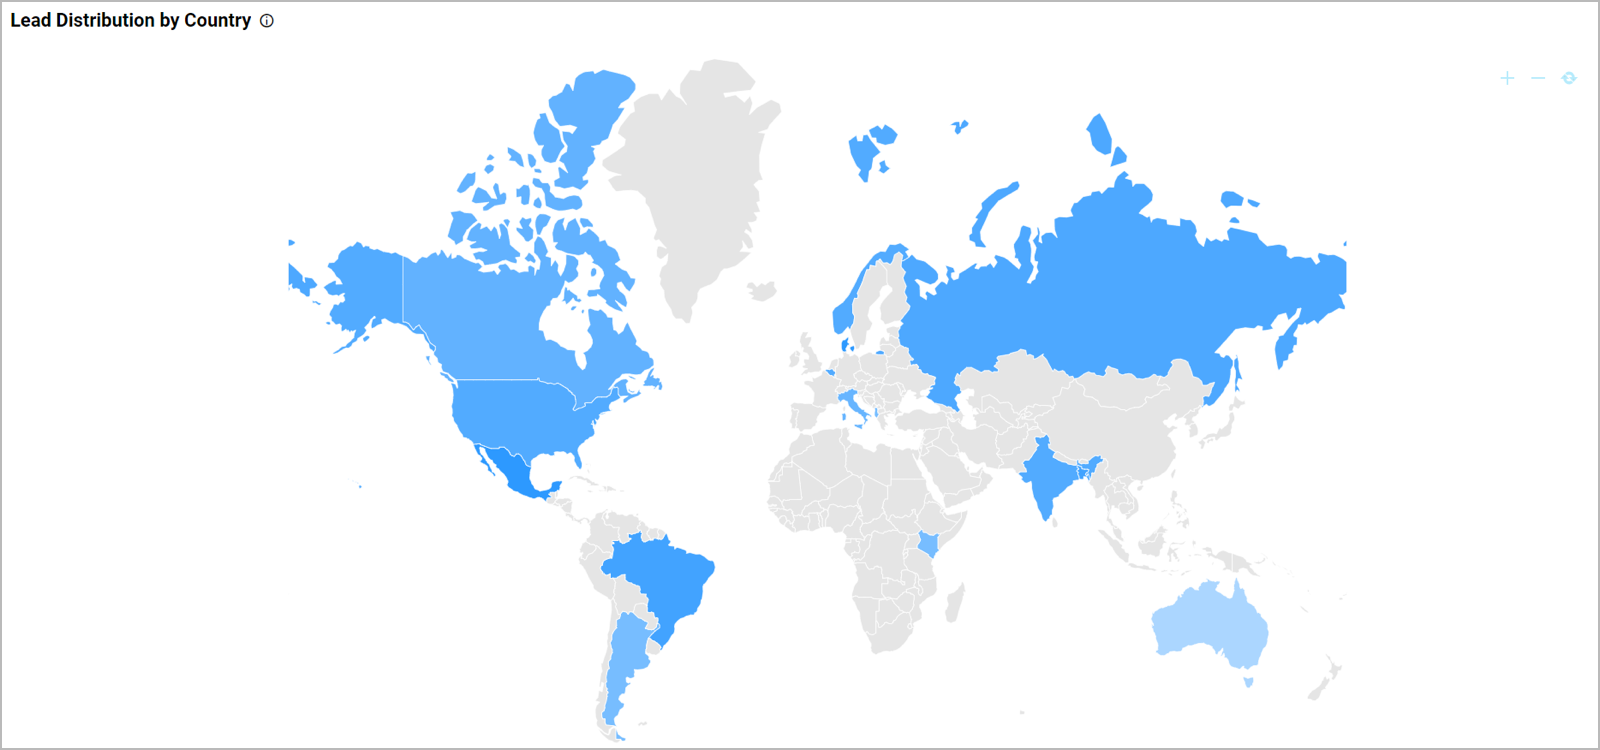 Lead Distribution by Country in Sales Marketing Leads Dashboard